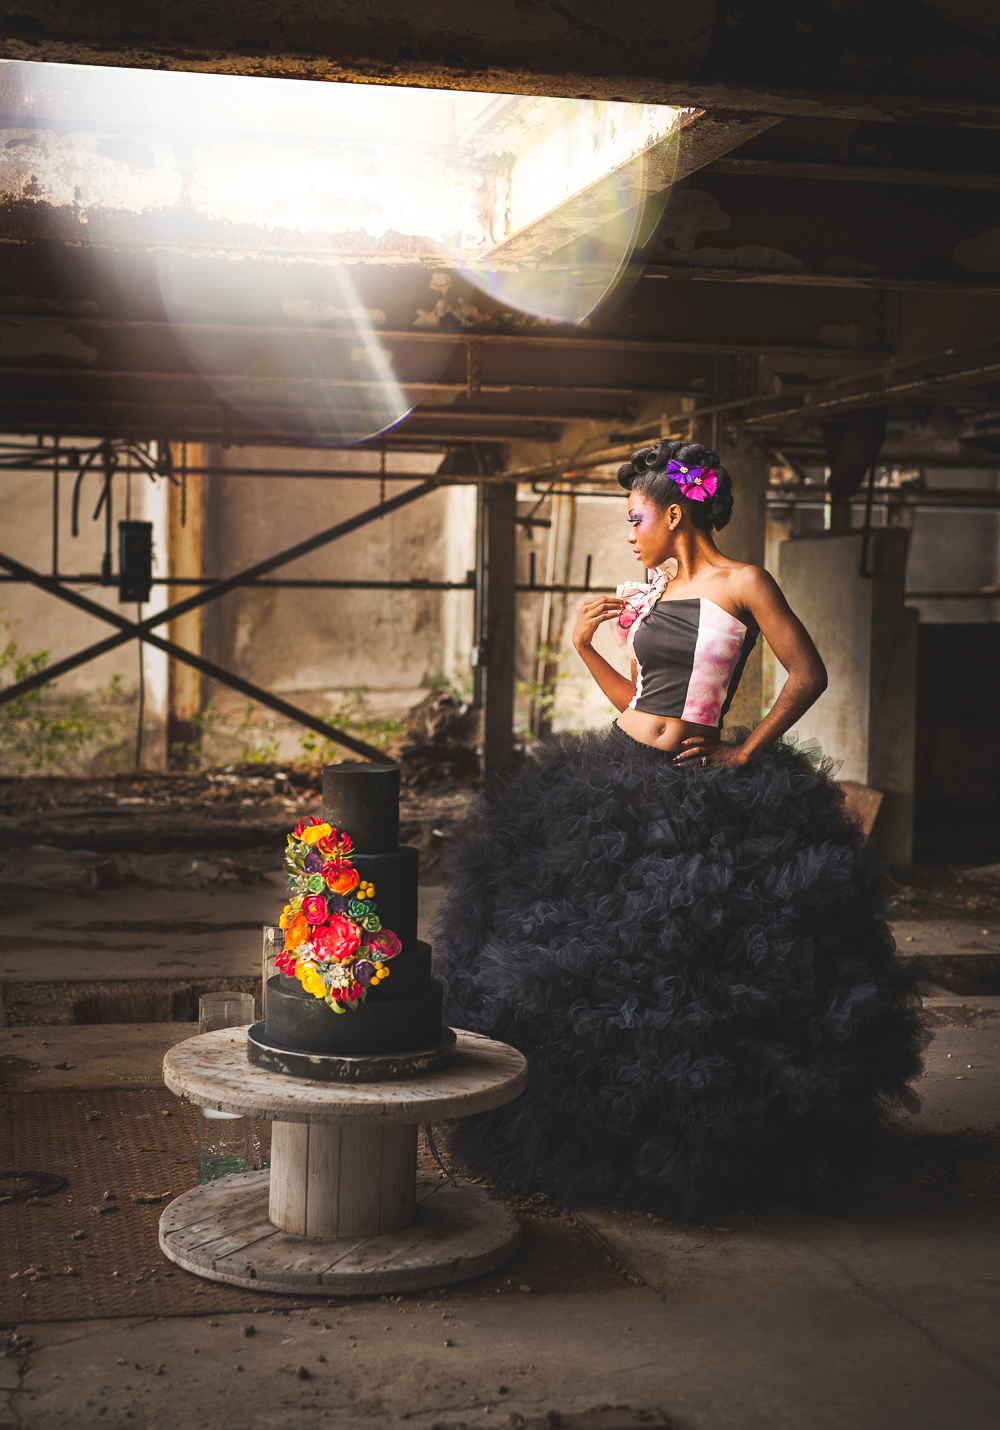 blackbean-photography-miracle-twenty-one-urban-wedding-shoot-urban-gypsy-couture-colourful-wedding-shoot-37